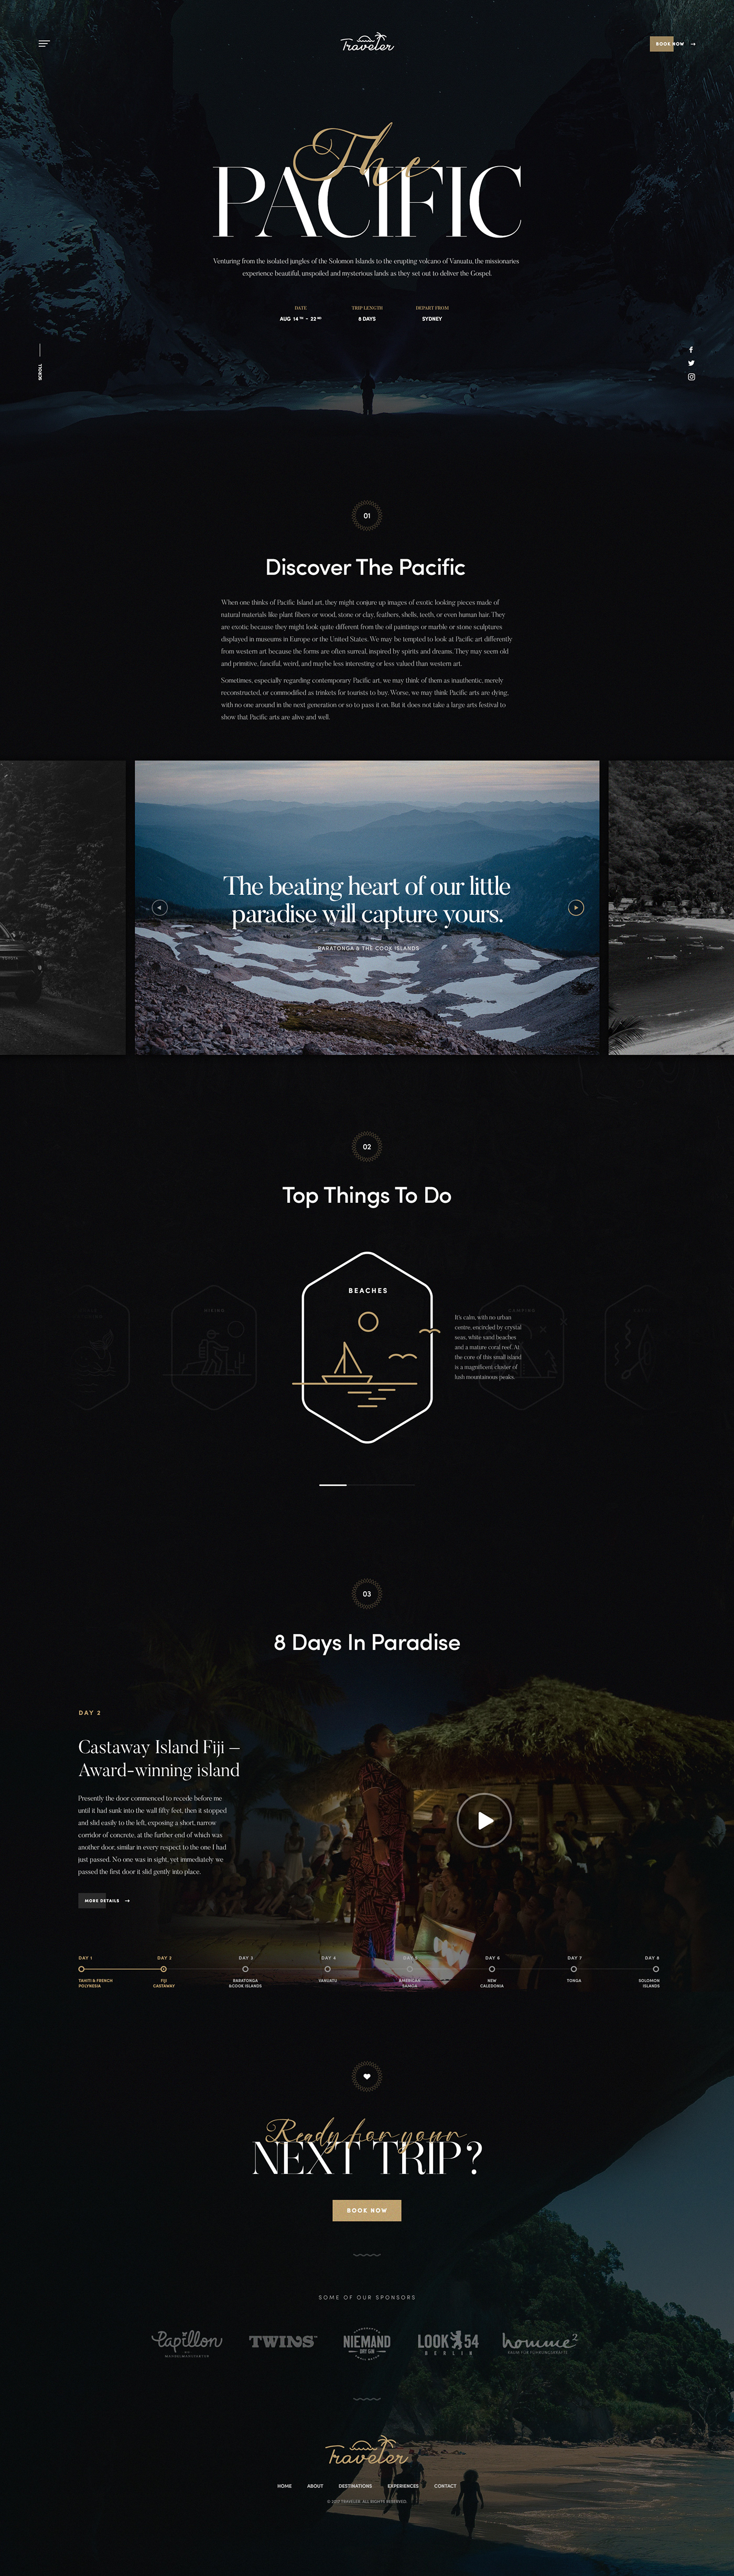 Travel Guide tour typography   Photography  UI ux Web Design